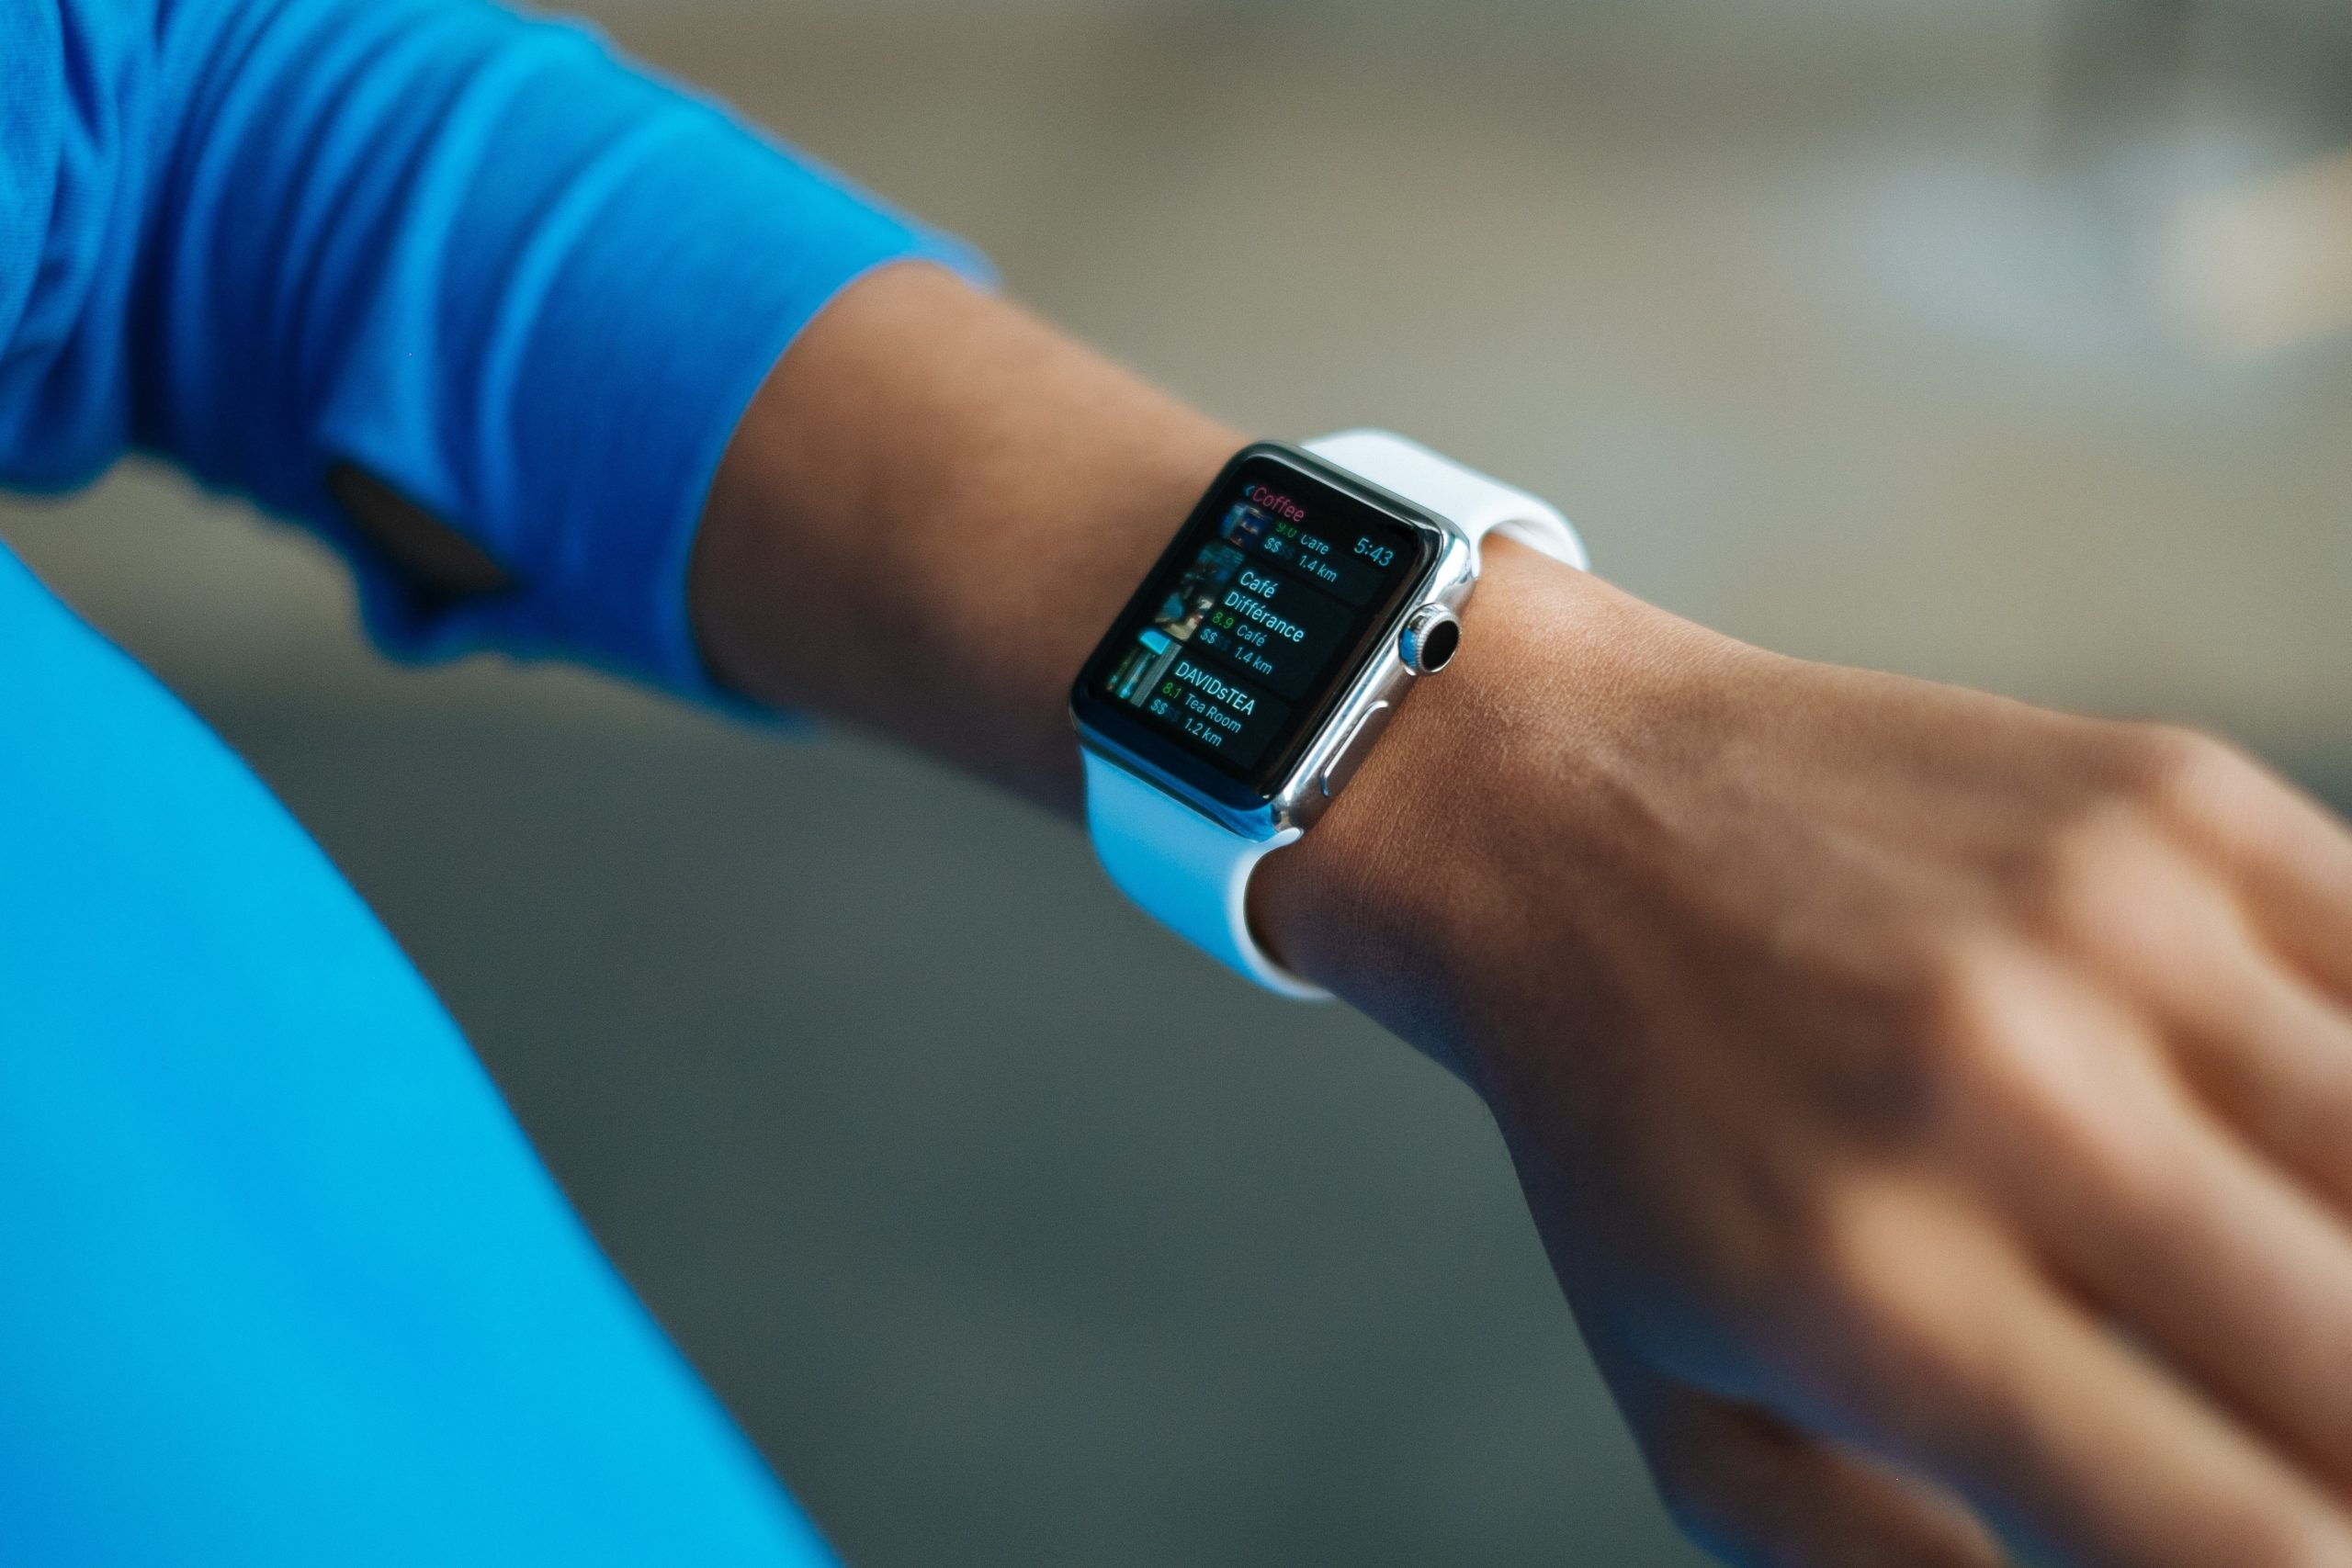 Apple Watch Privacy Settings For Data Privacy?